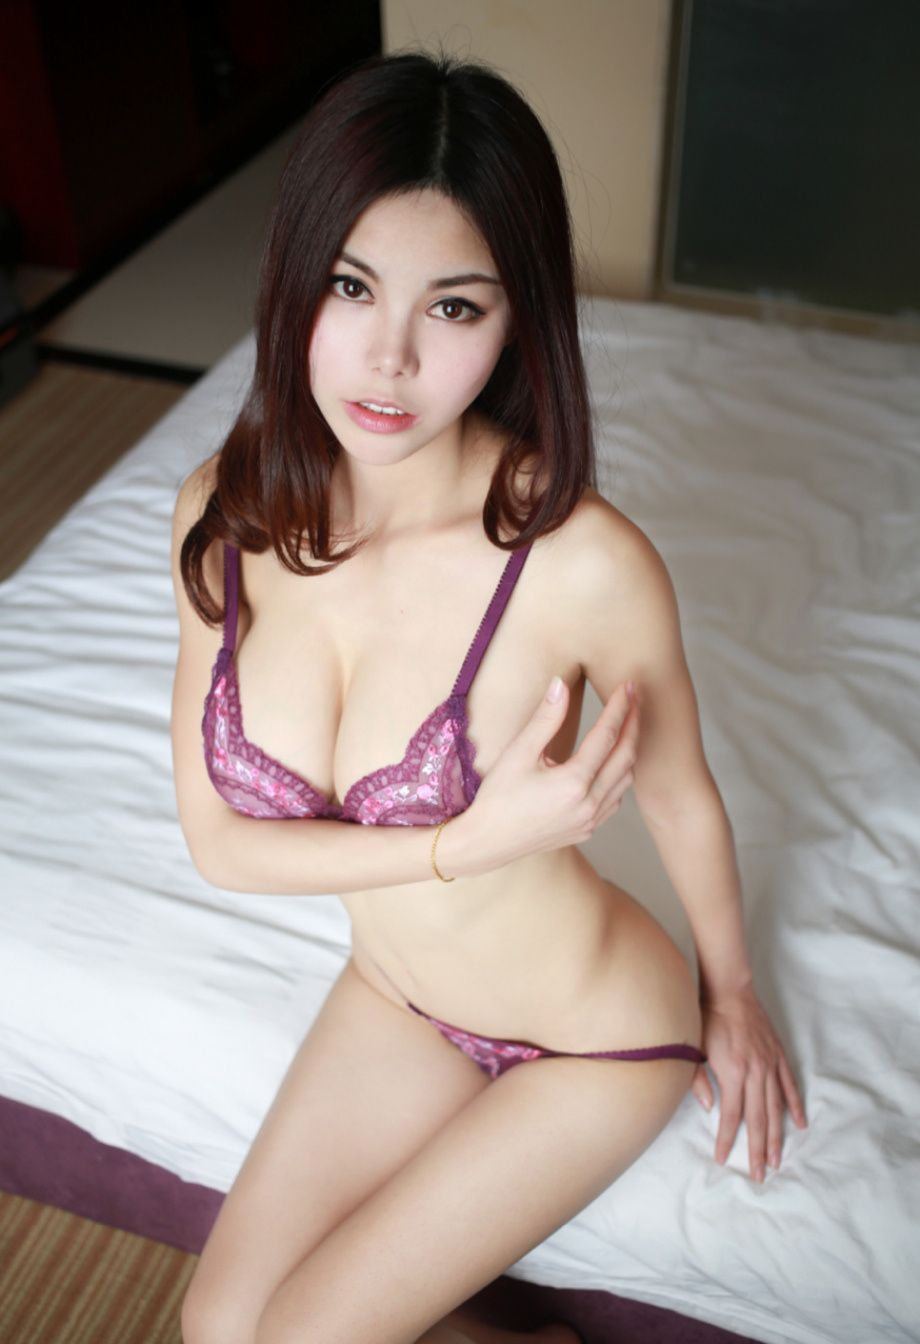 Pin On Hot Babe S